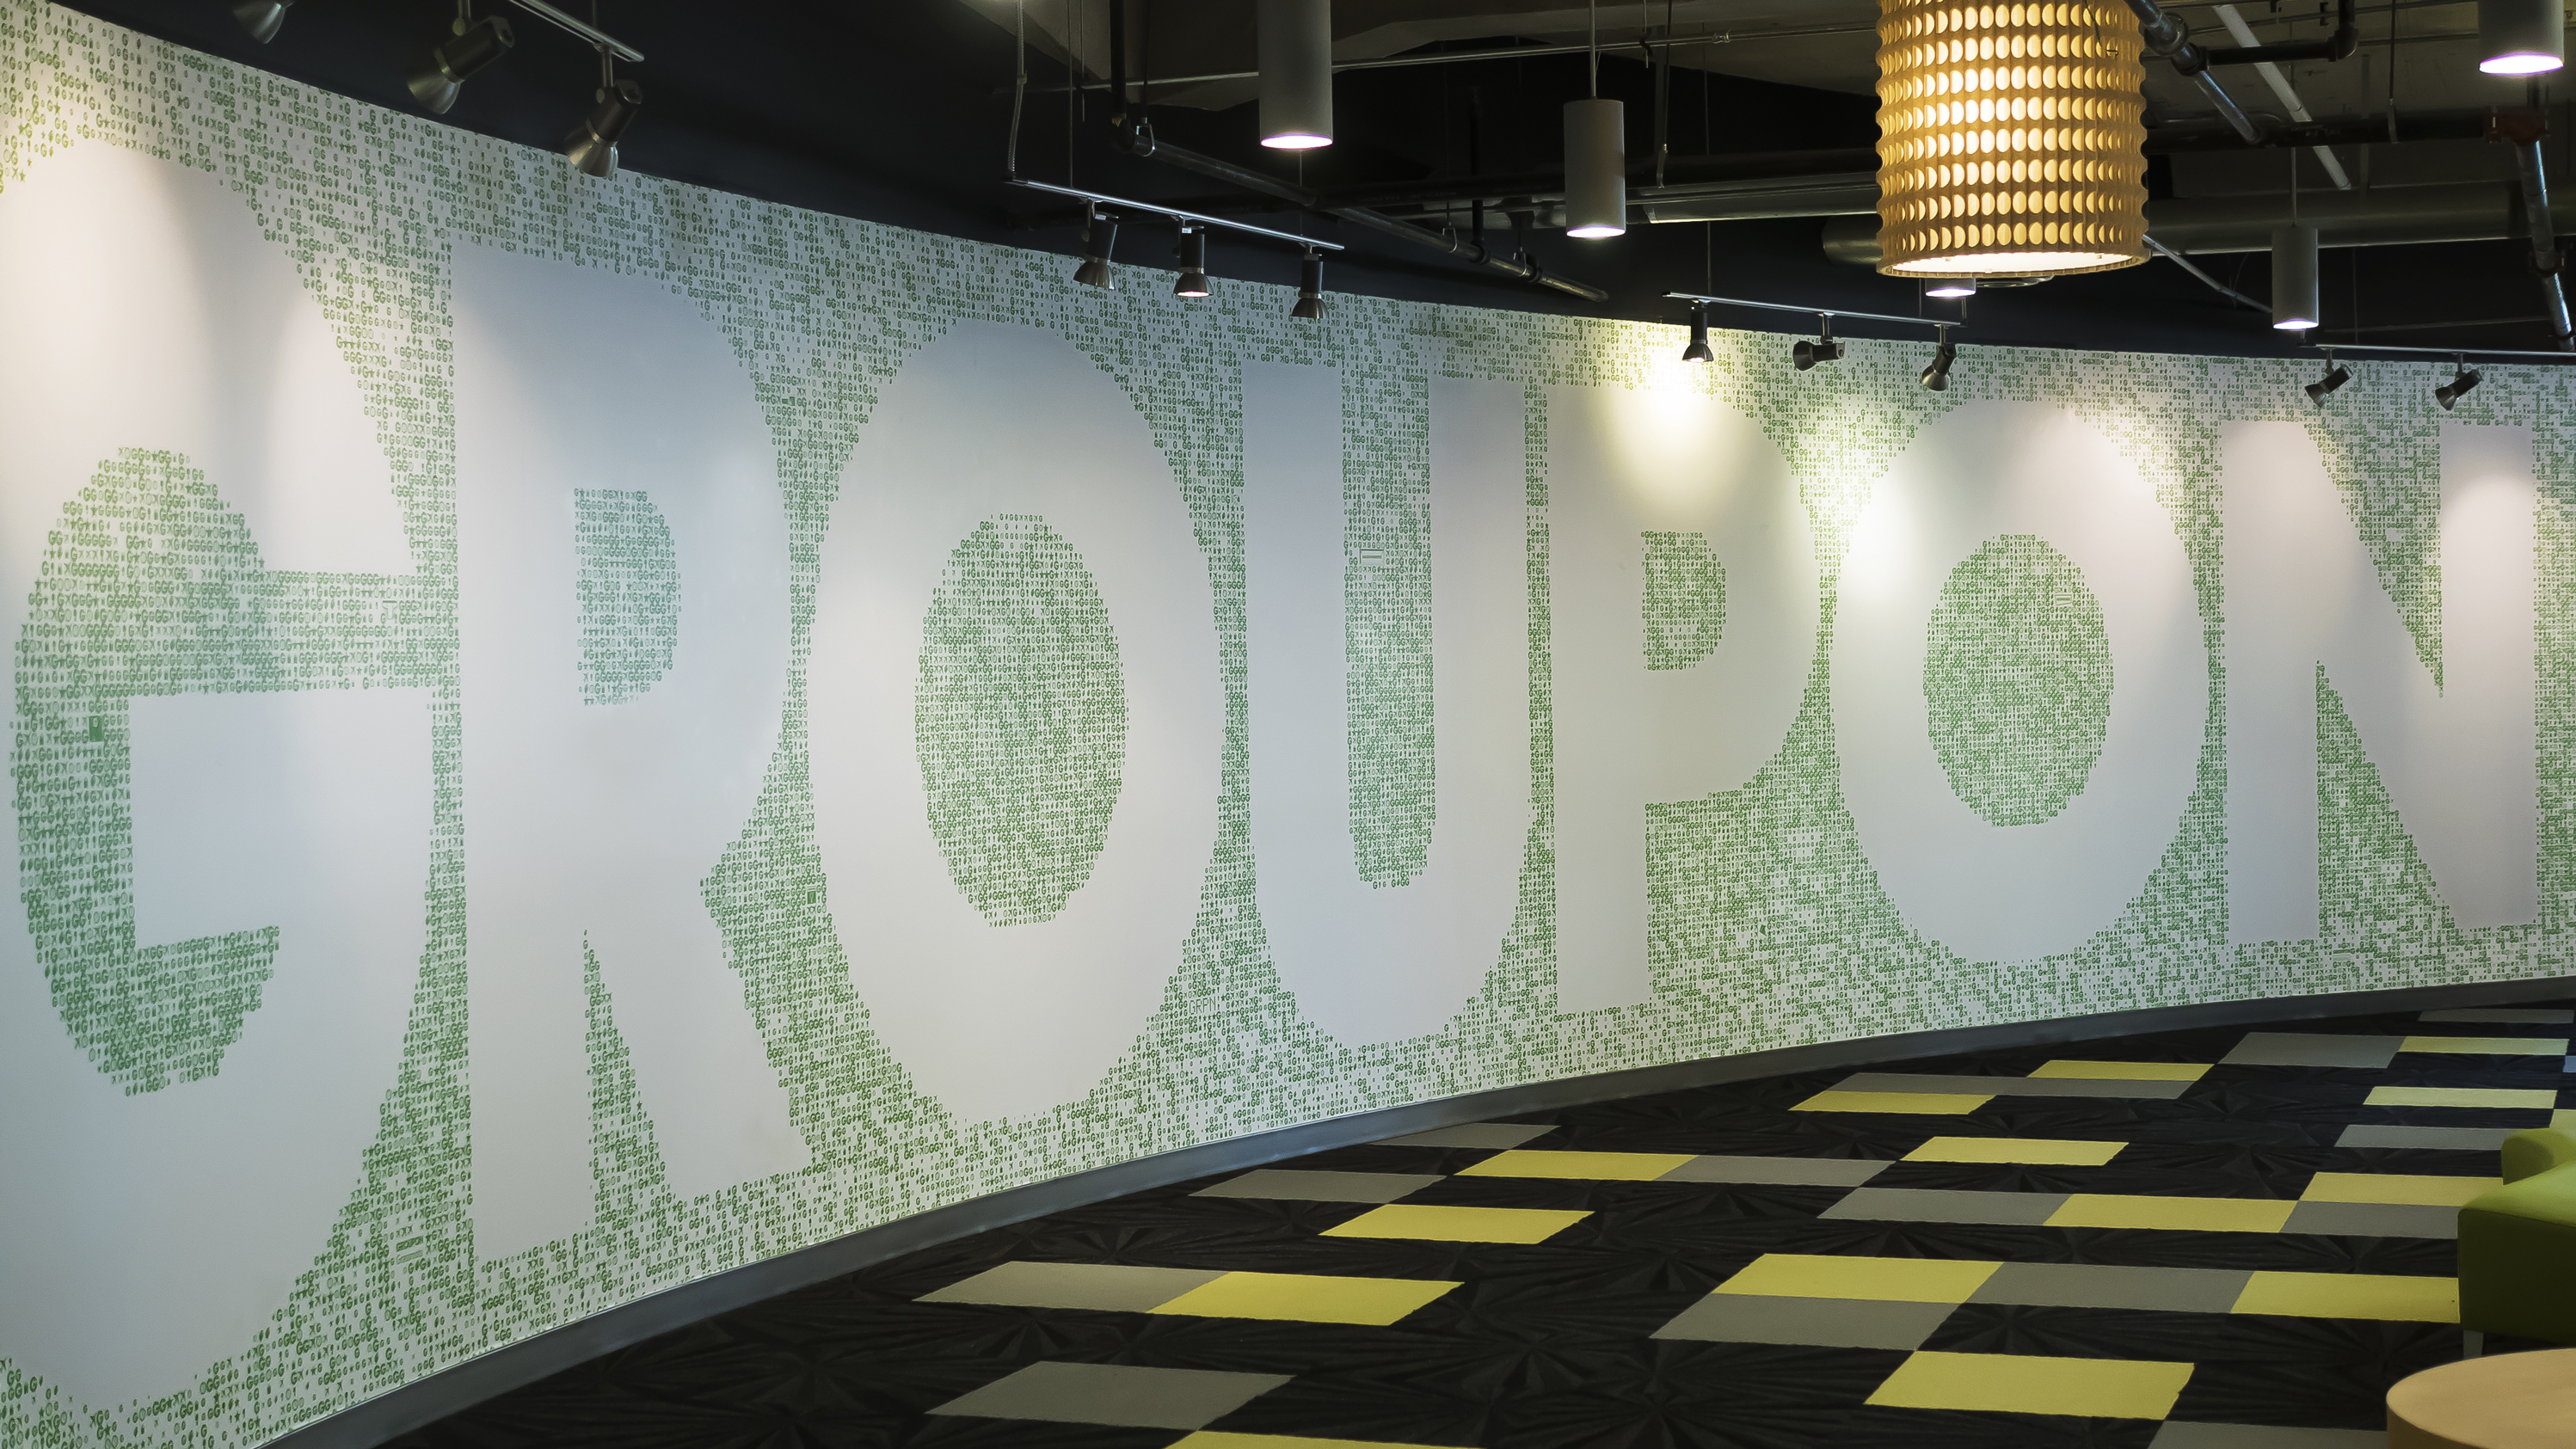 Groupon adds ad exec Steve Krenzer as new COO, sold assets to Grubhub for $20M